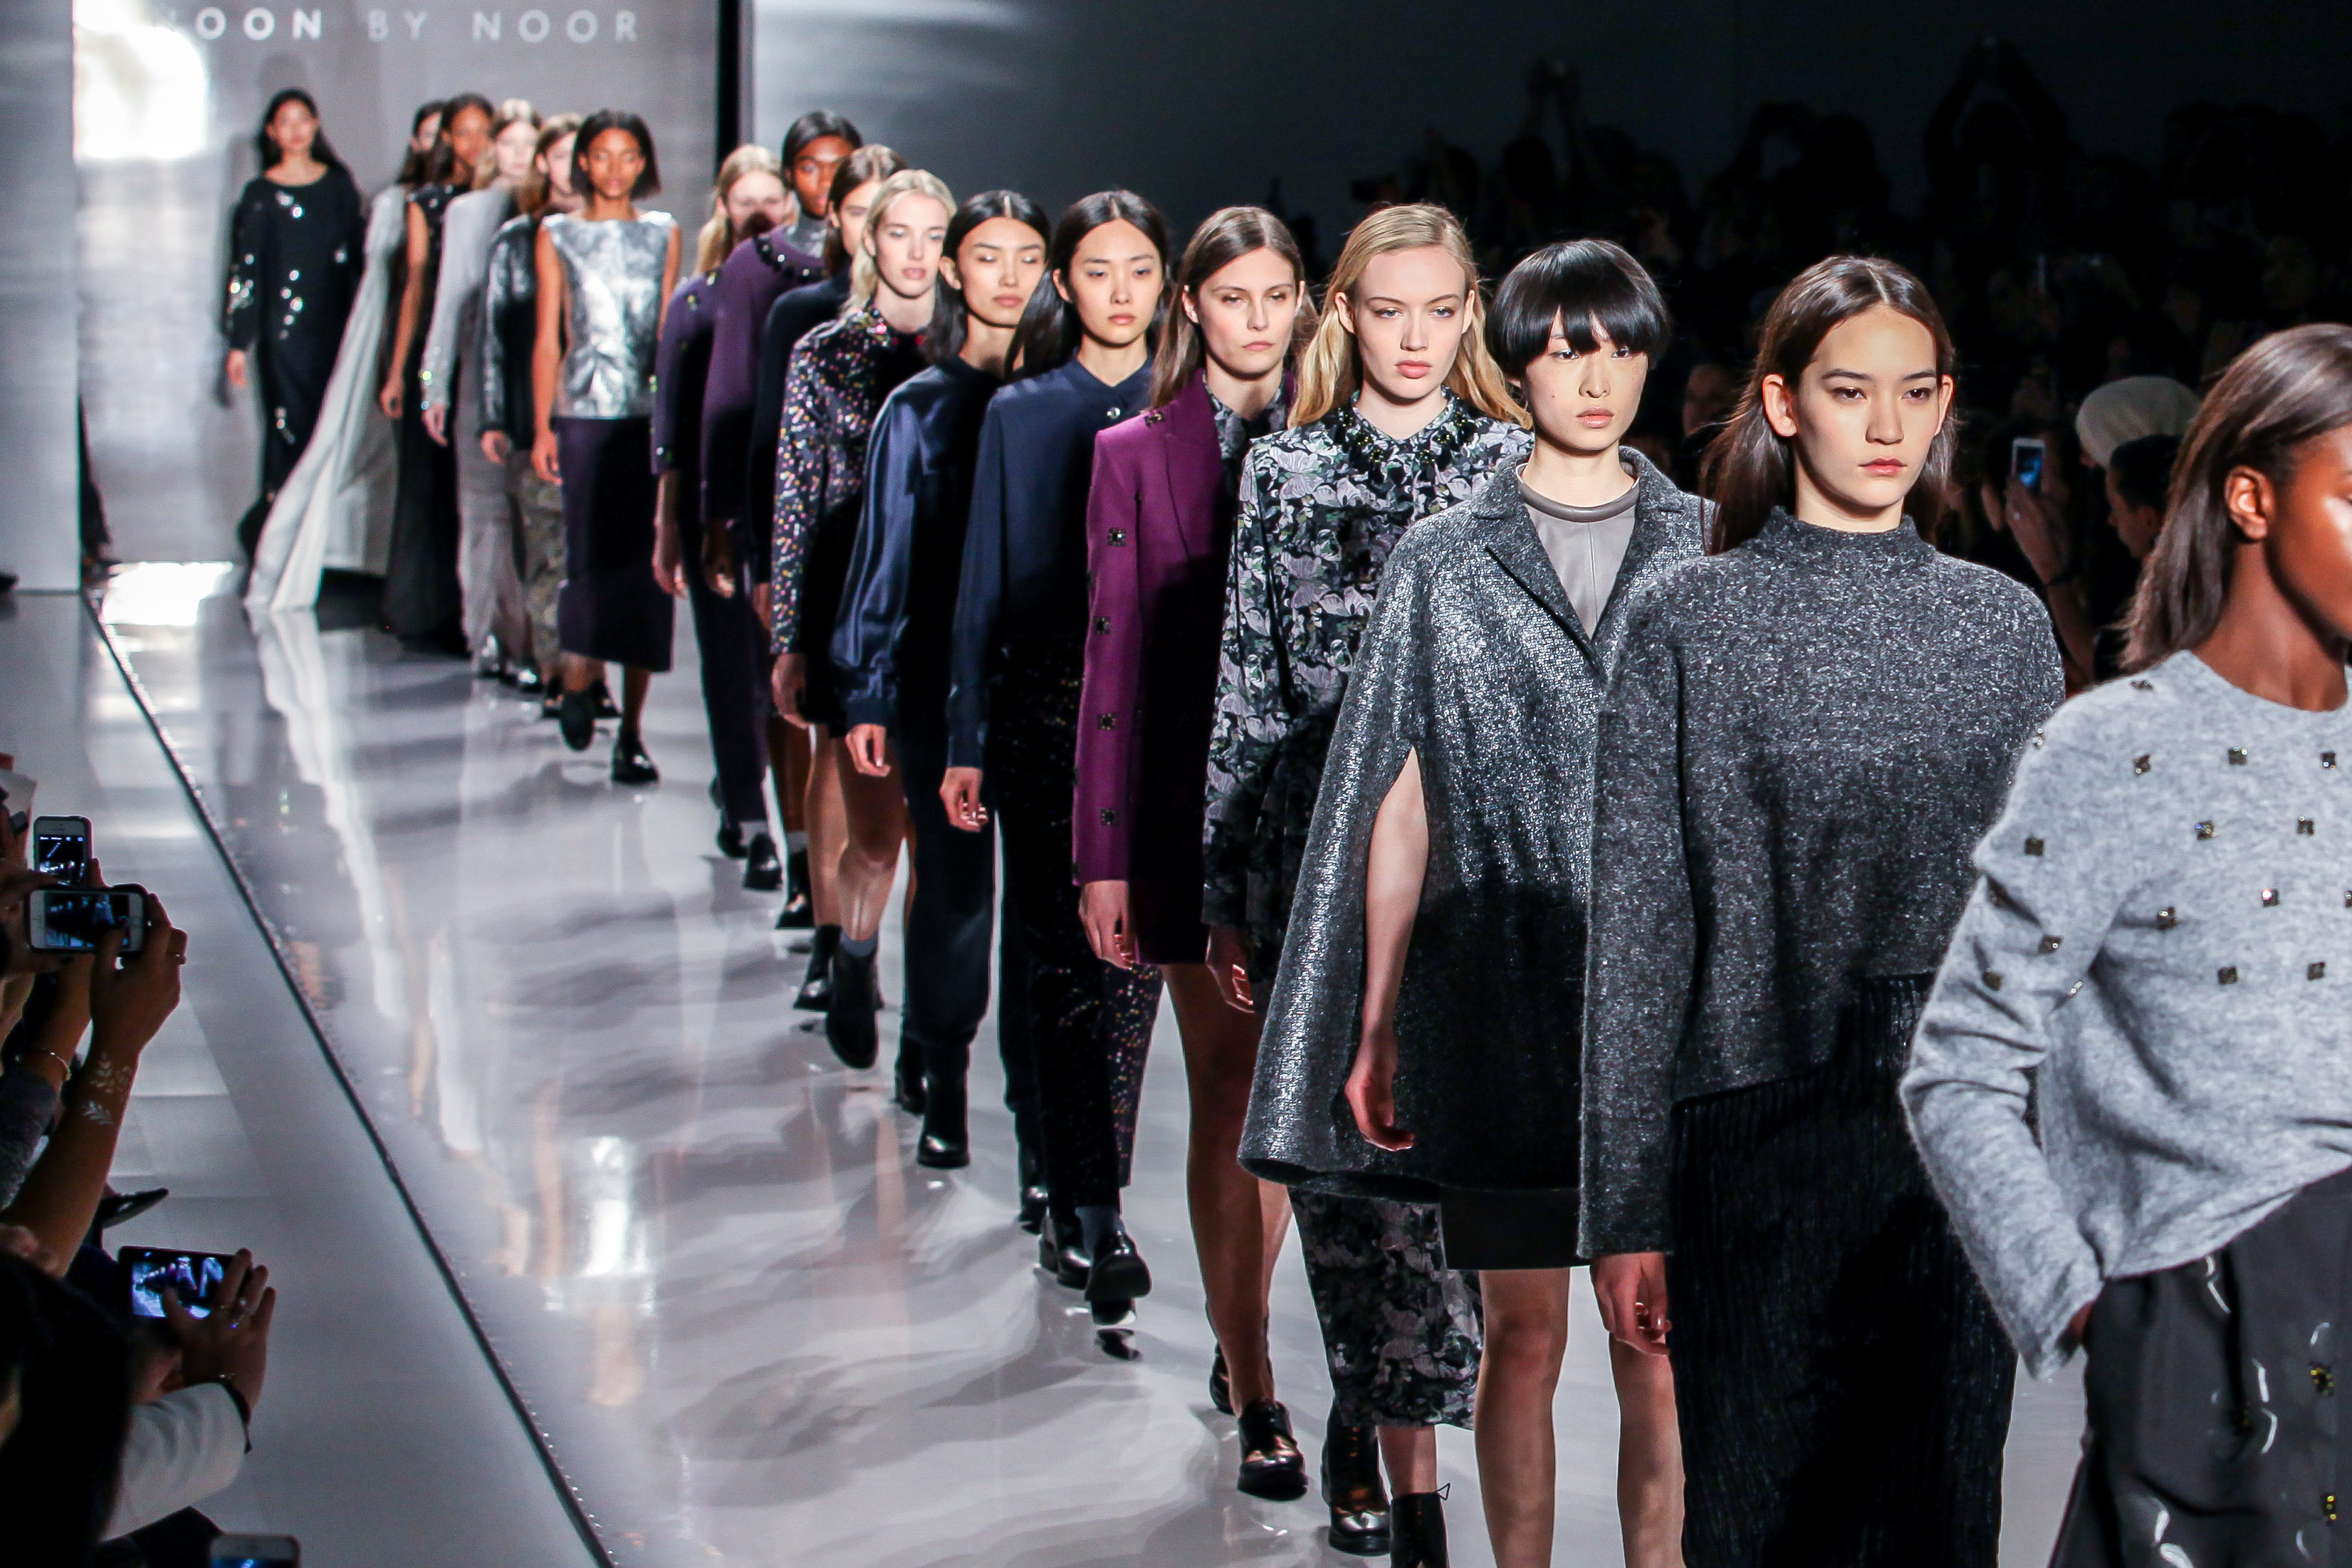 44 Thoughts You Have While Watching New York Fashion Week